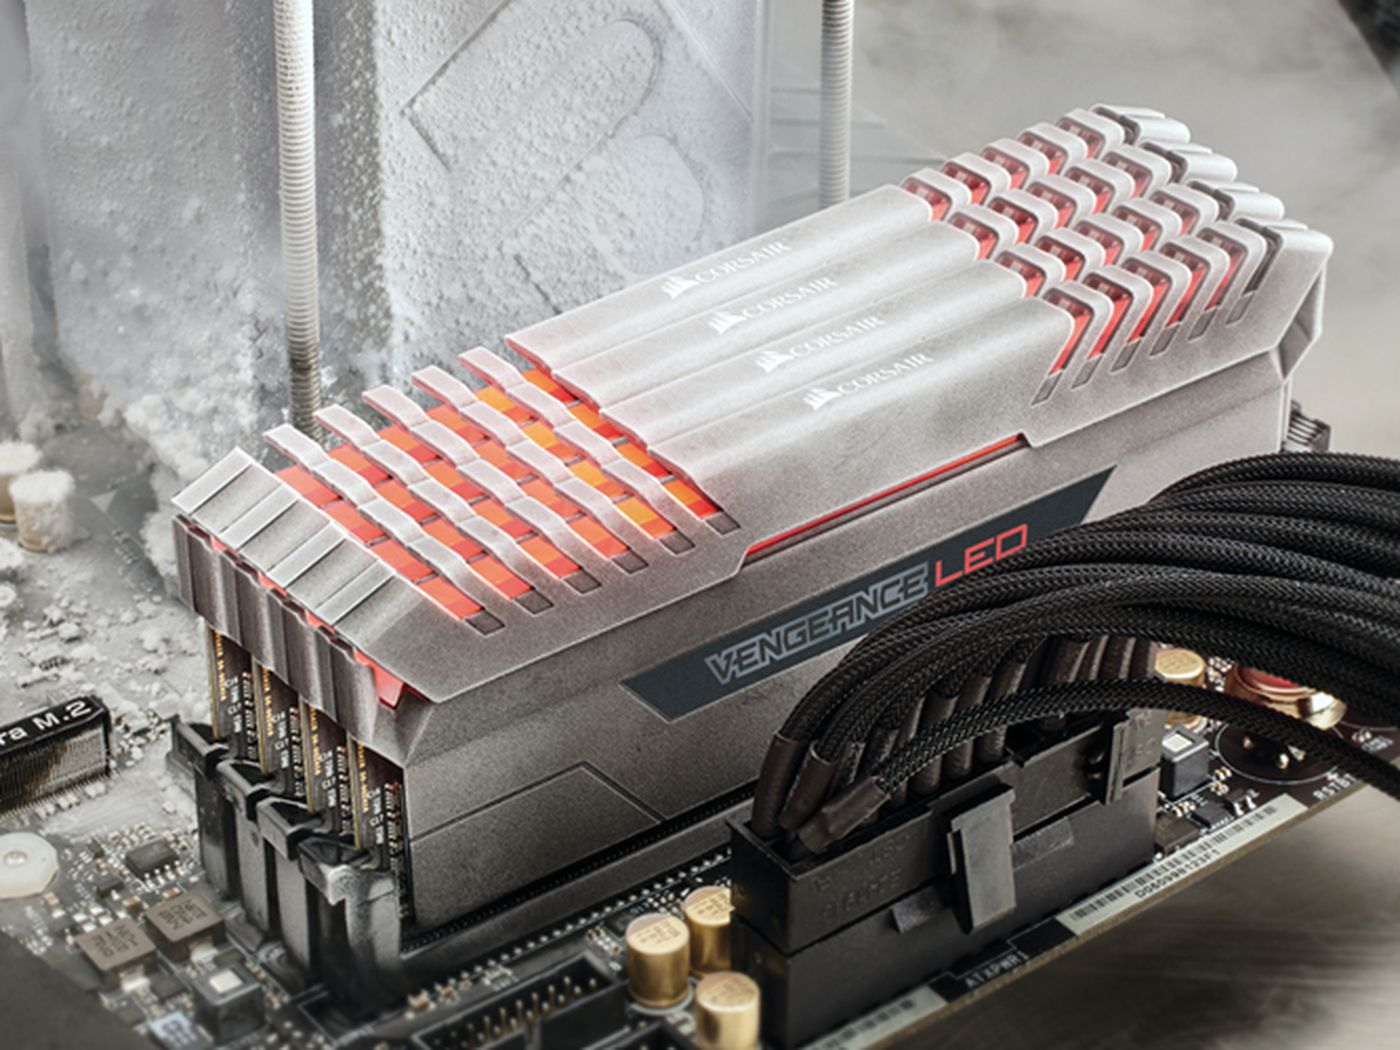 This RAM is lit - The Verge